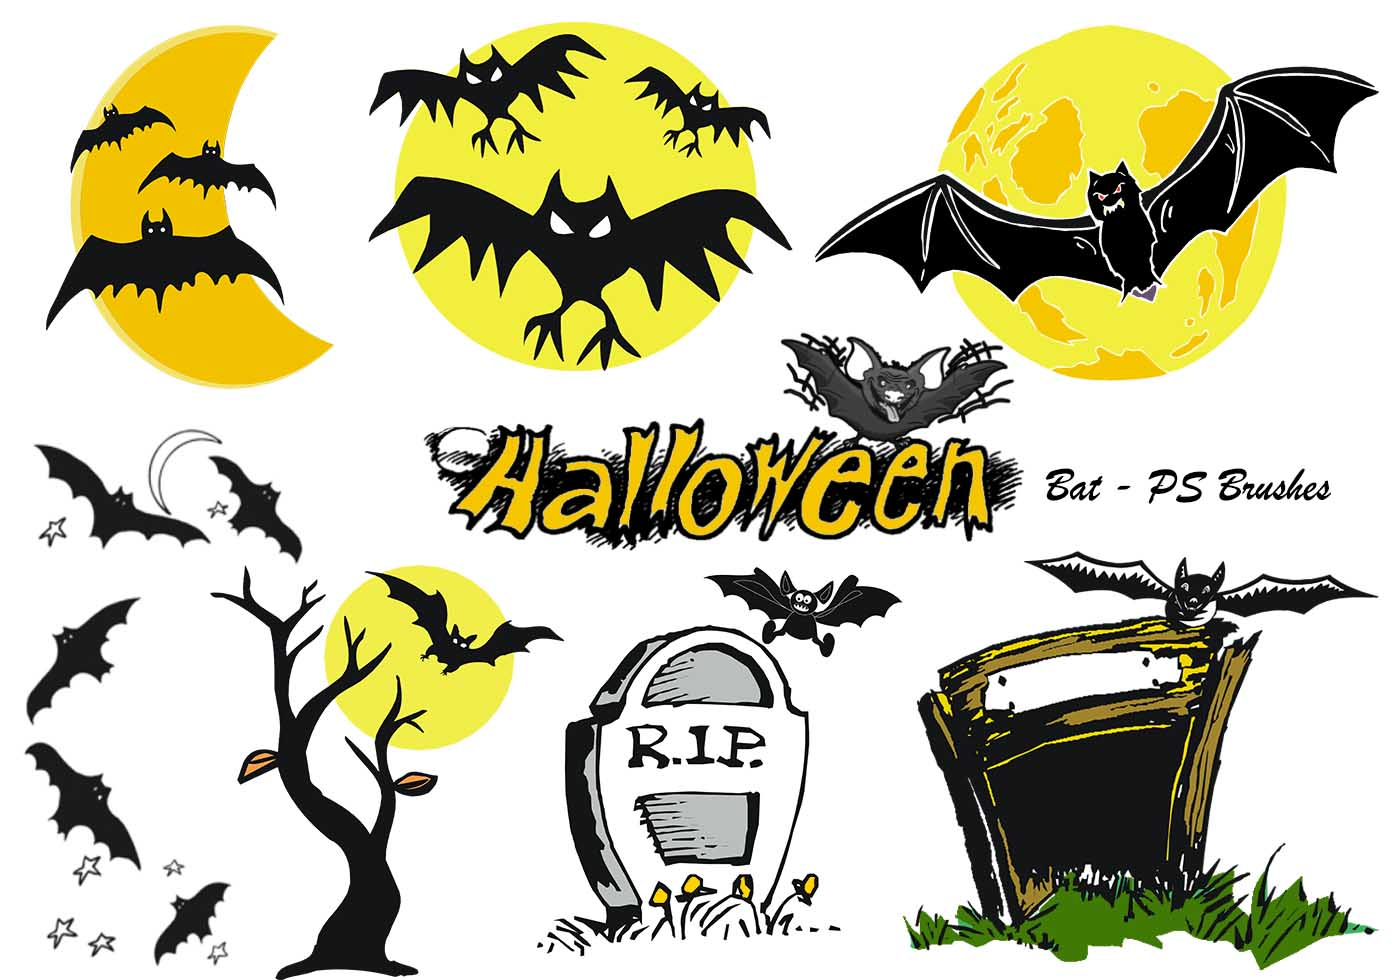 20 halloween bat ps brushes abr vol 7 free photoshop brushes at